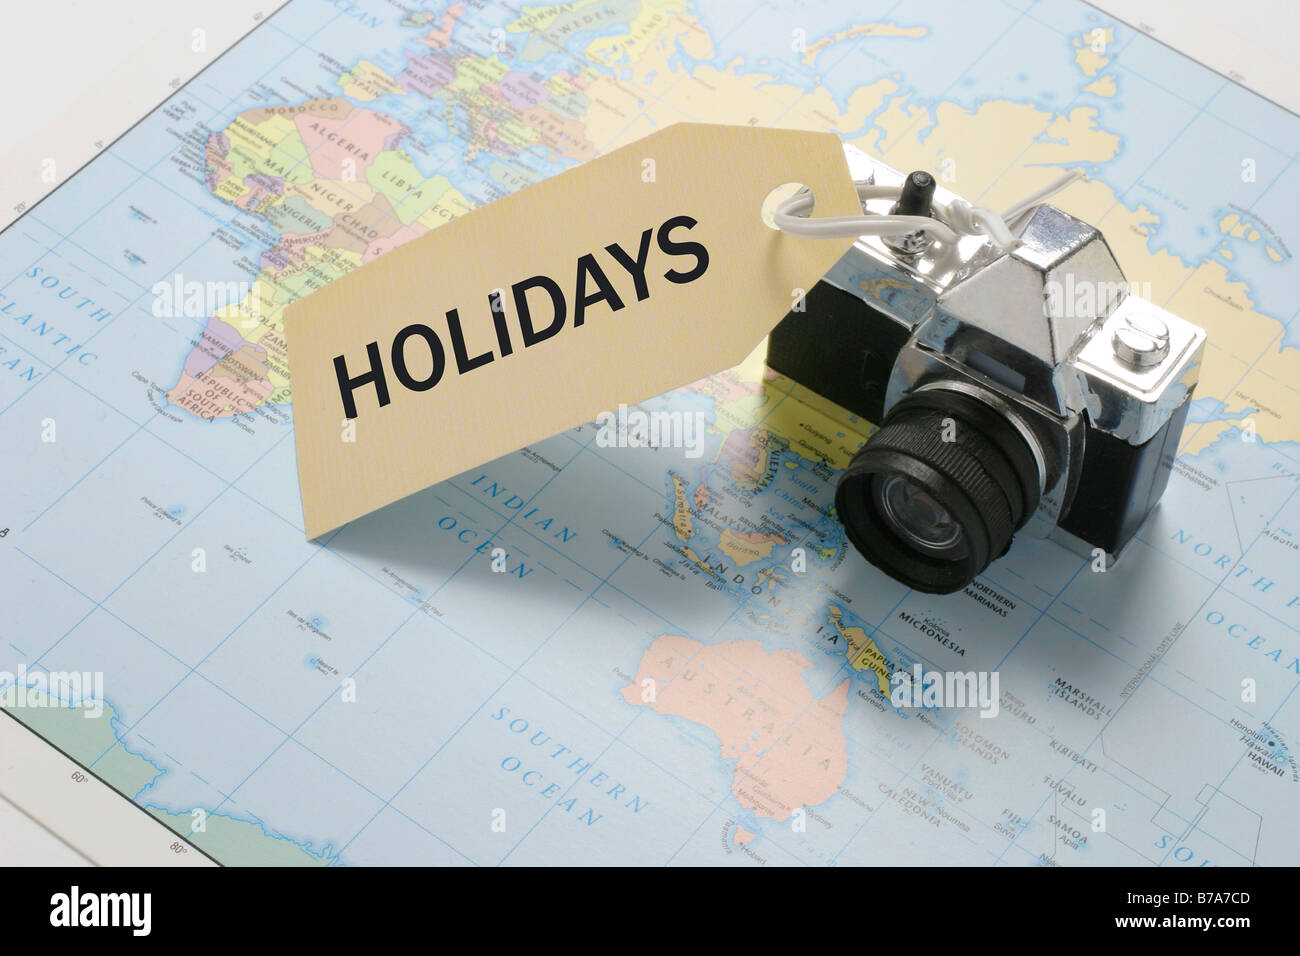 Camera on world map with 'Holidays' tag Stock Photo